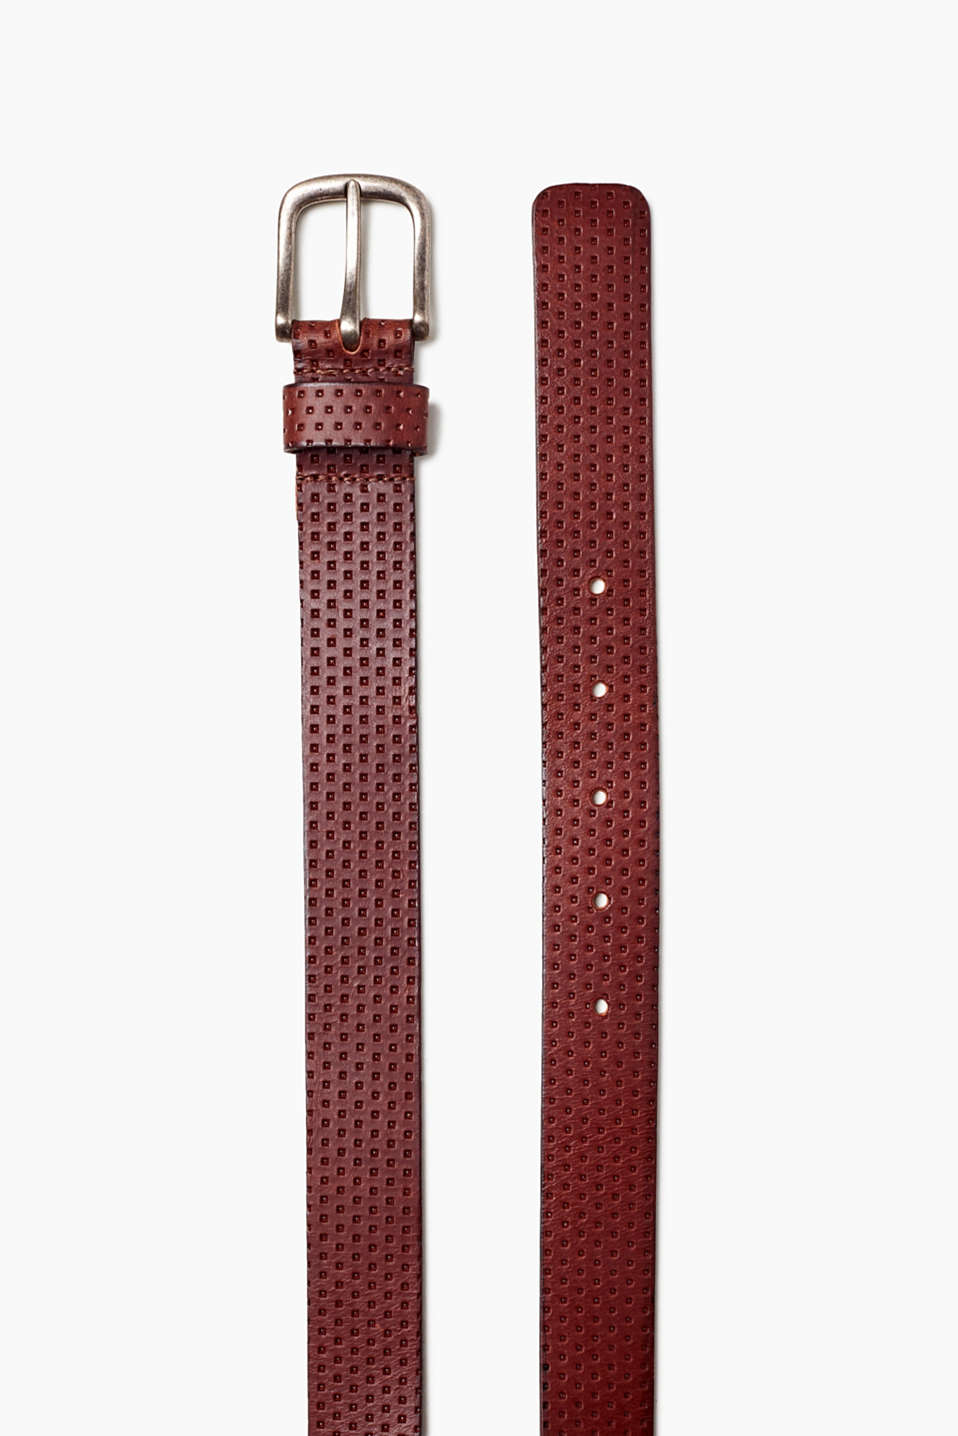 Structure it! The on-point perforations make this belt a stylish accessory!